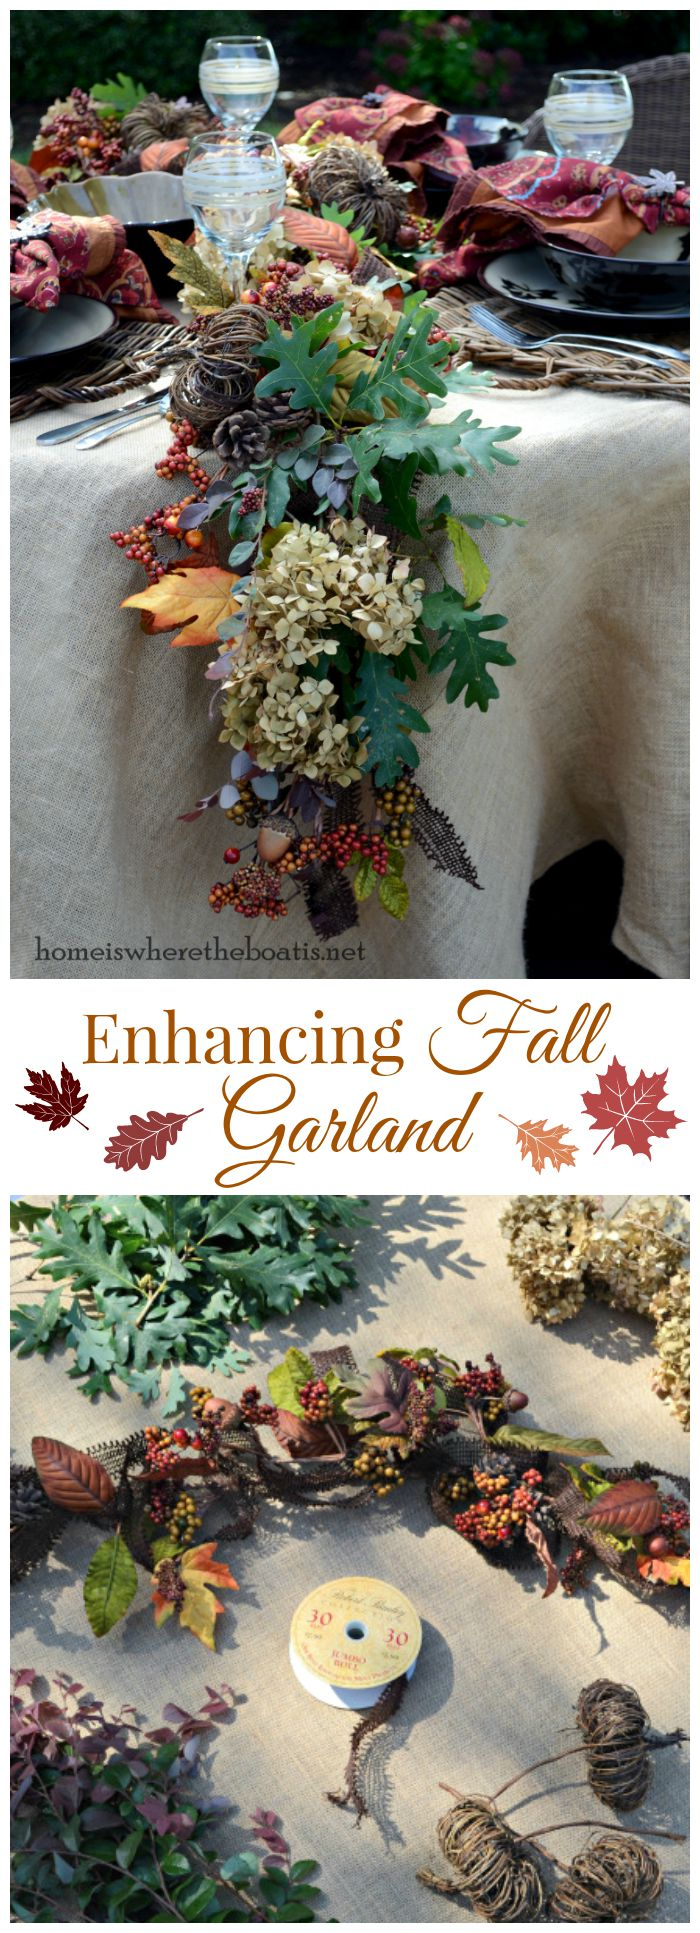 Enhancing Fall Garland